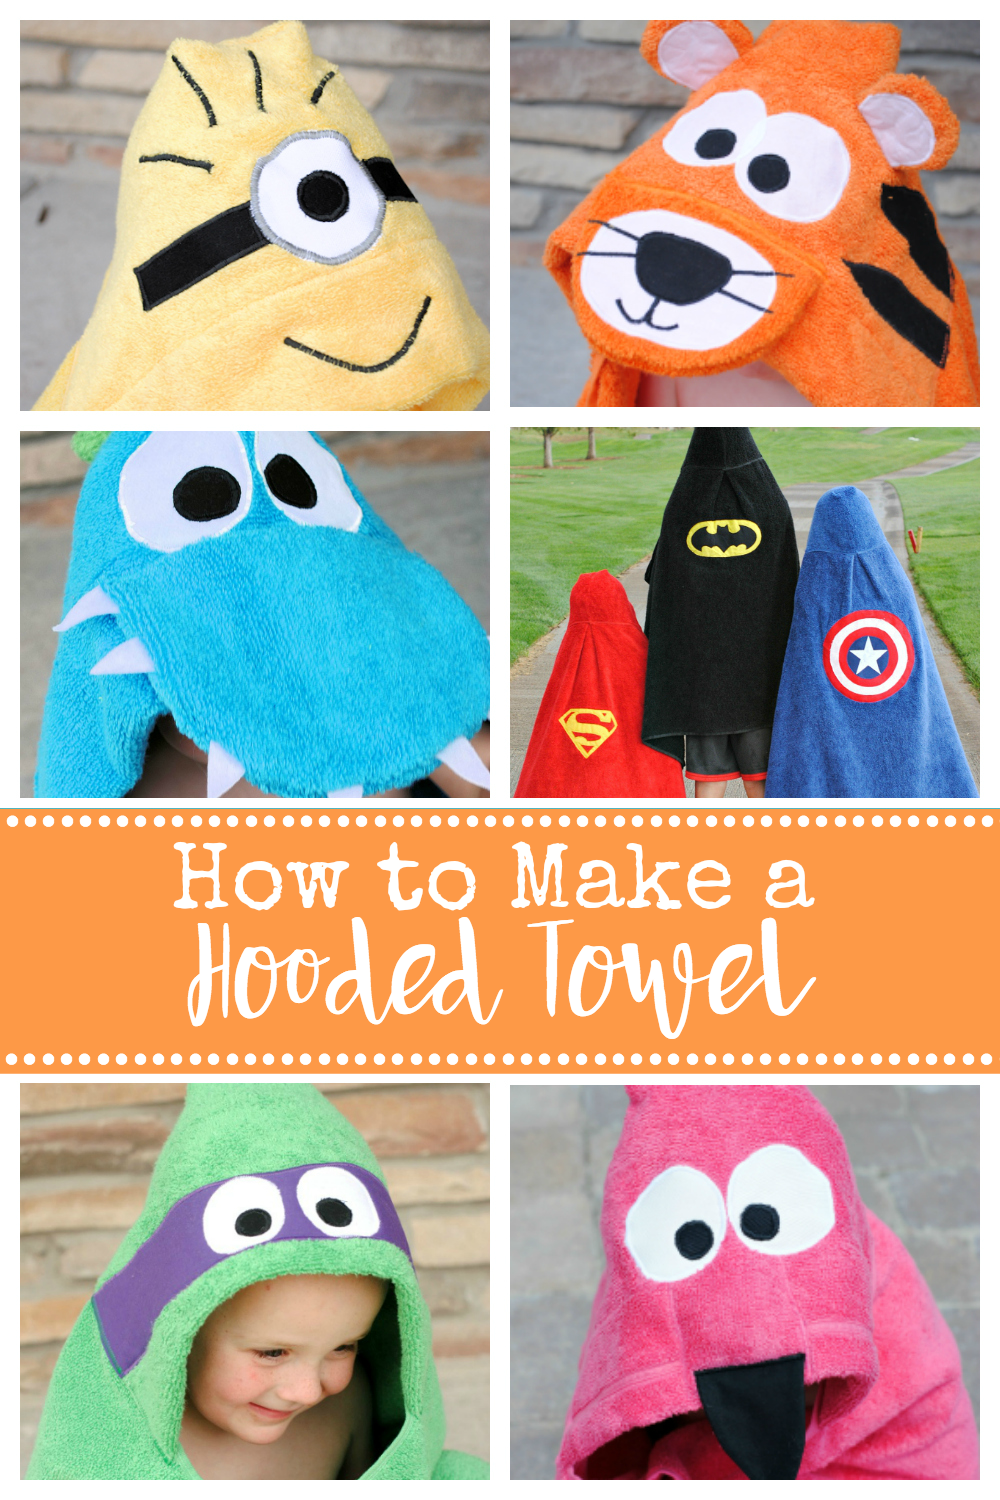 How to Make a Hooded Towel-Sew a cute hooded towel for babies and toddlers and even older kids with this easy to follow hooded towel pattern. #sew #sewing #baby #patterns